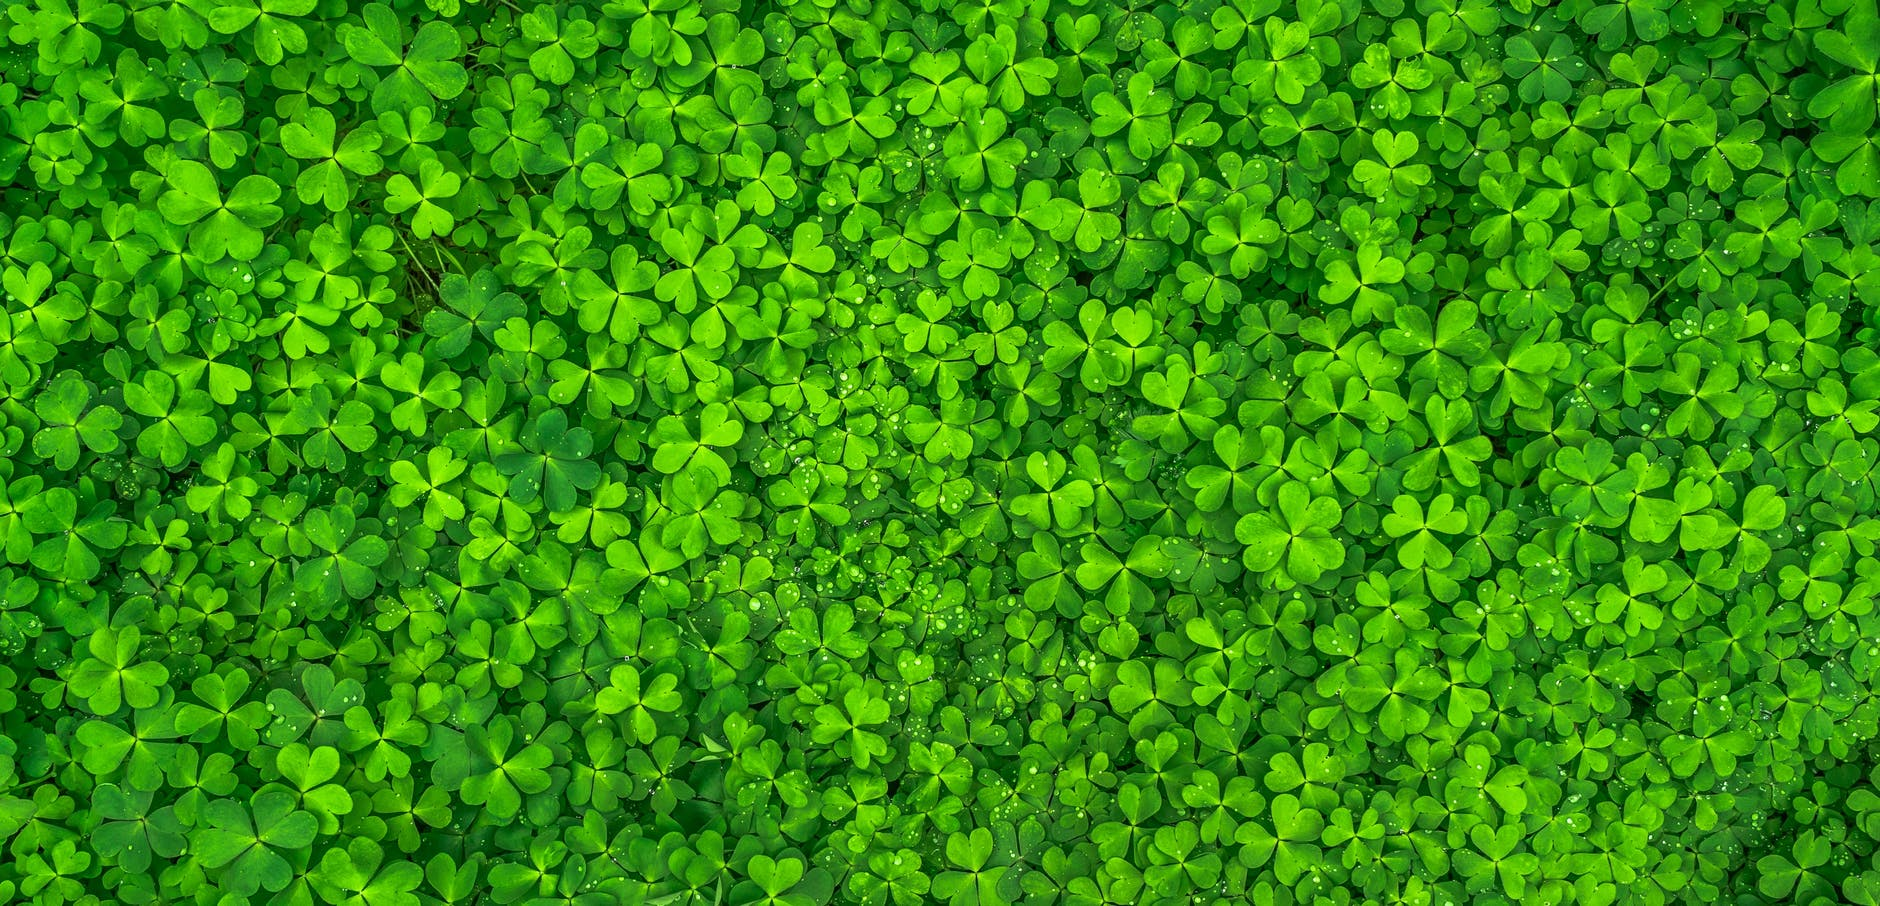 A field of shamrocks, seen from above.